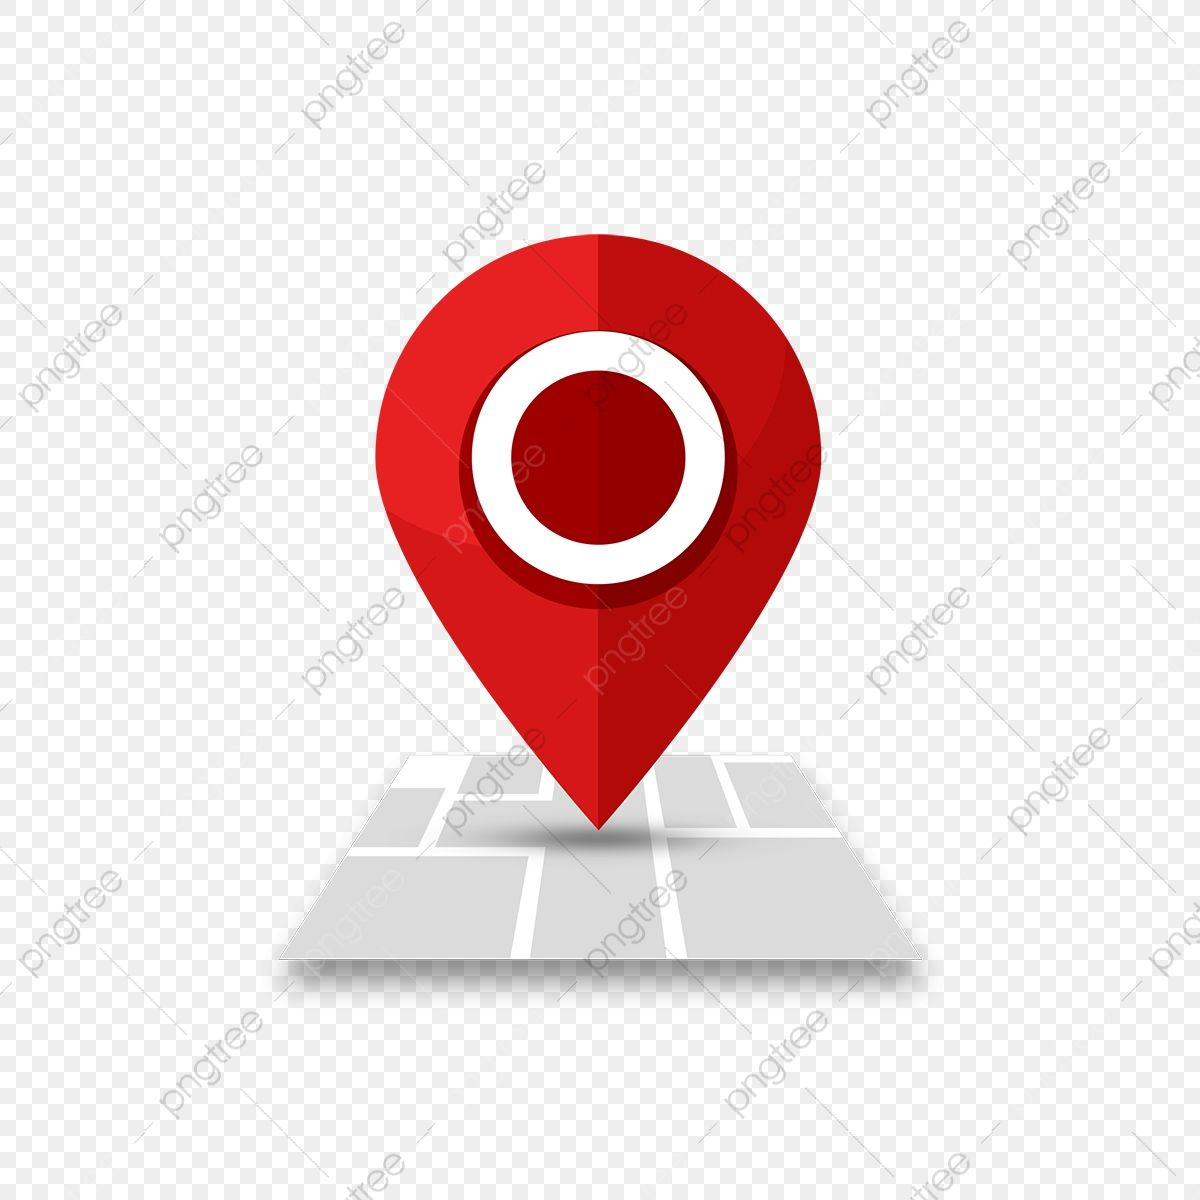 Red Map Location Location Icon Element Location Clipart Red Map Png Transparent Clipart Image And Psd File For Free Download Location Icon Map Marker Vector Logo Design